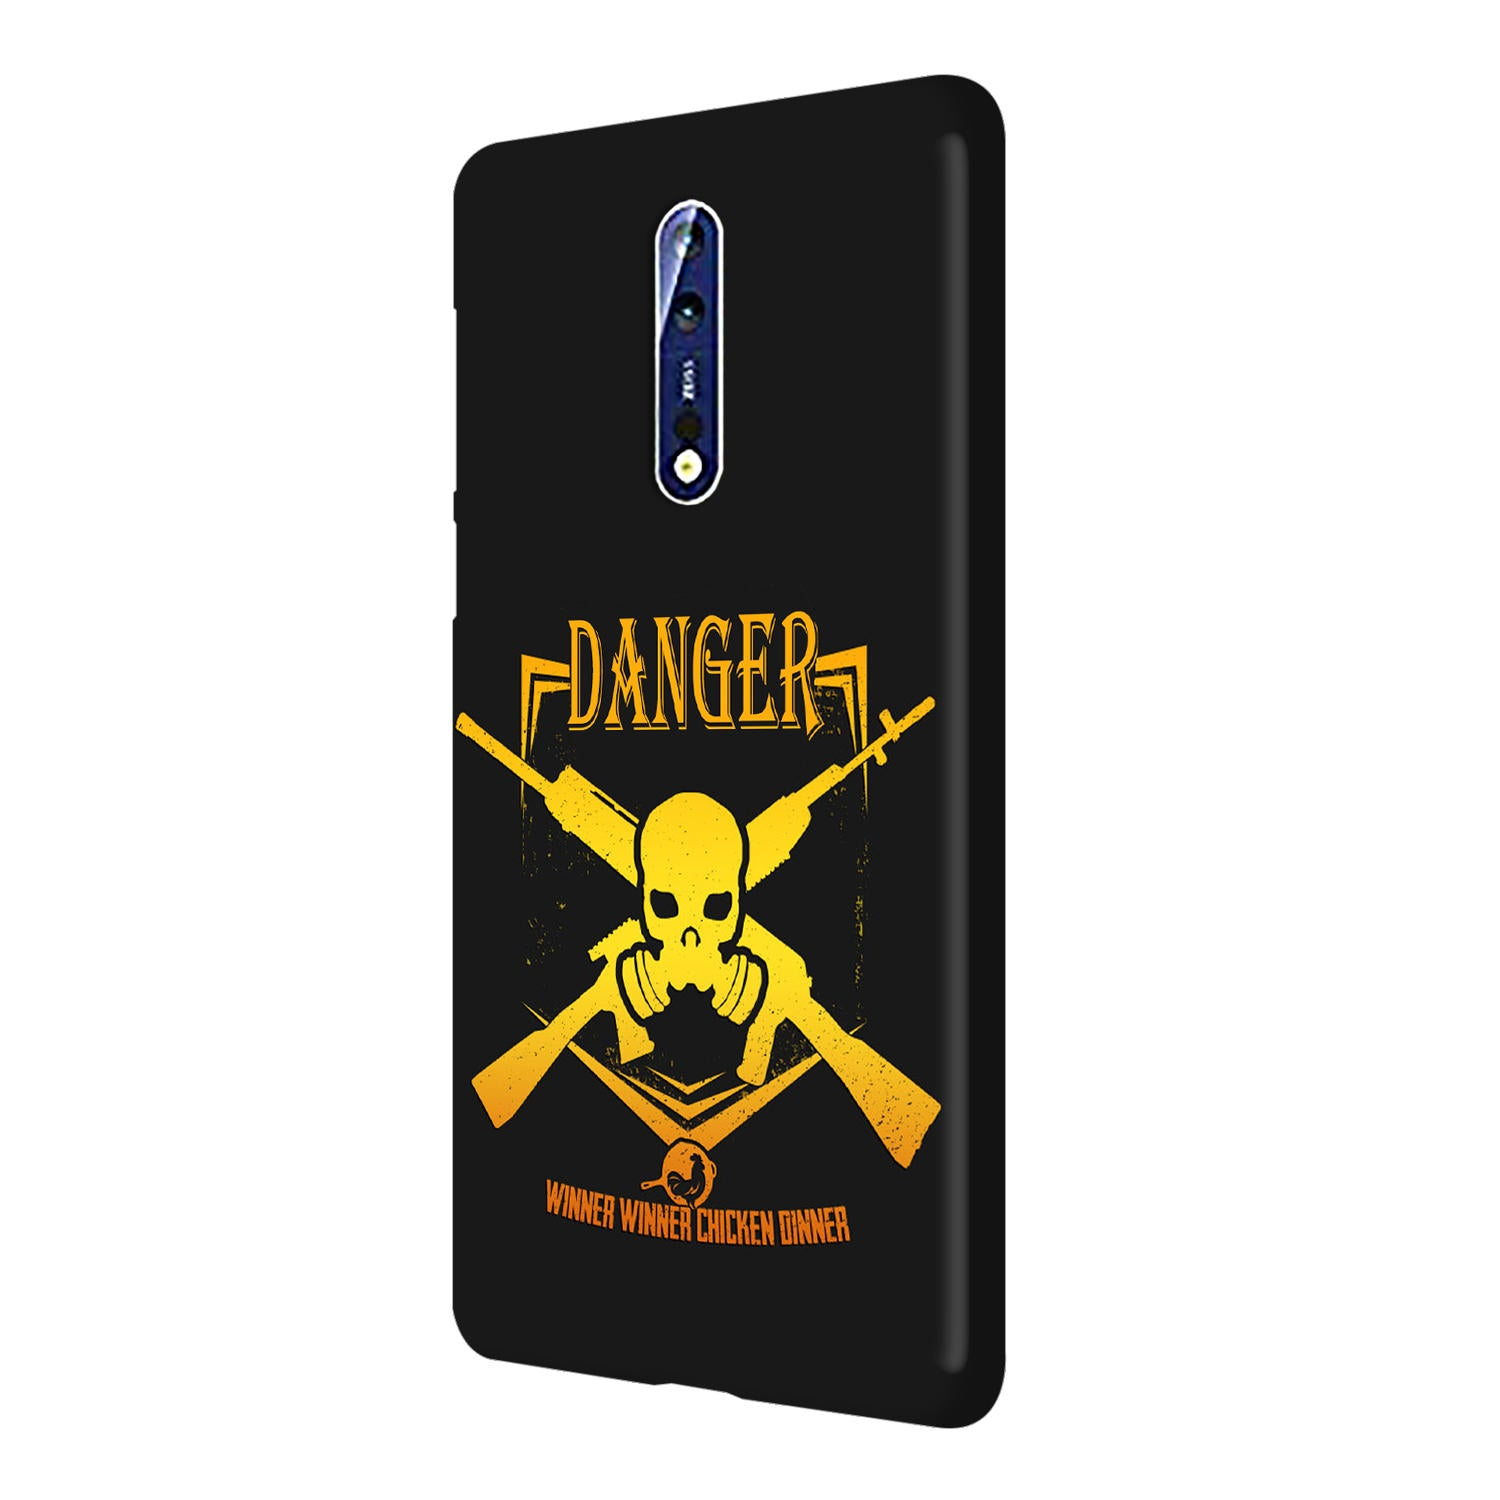 Danger Gun Sign Typography Nokia 8 Mobile Cover Case